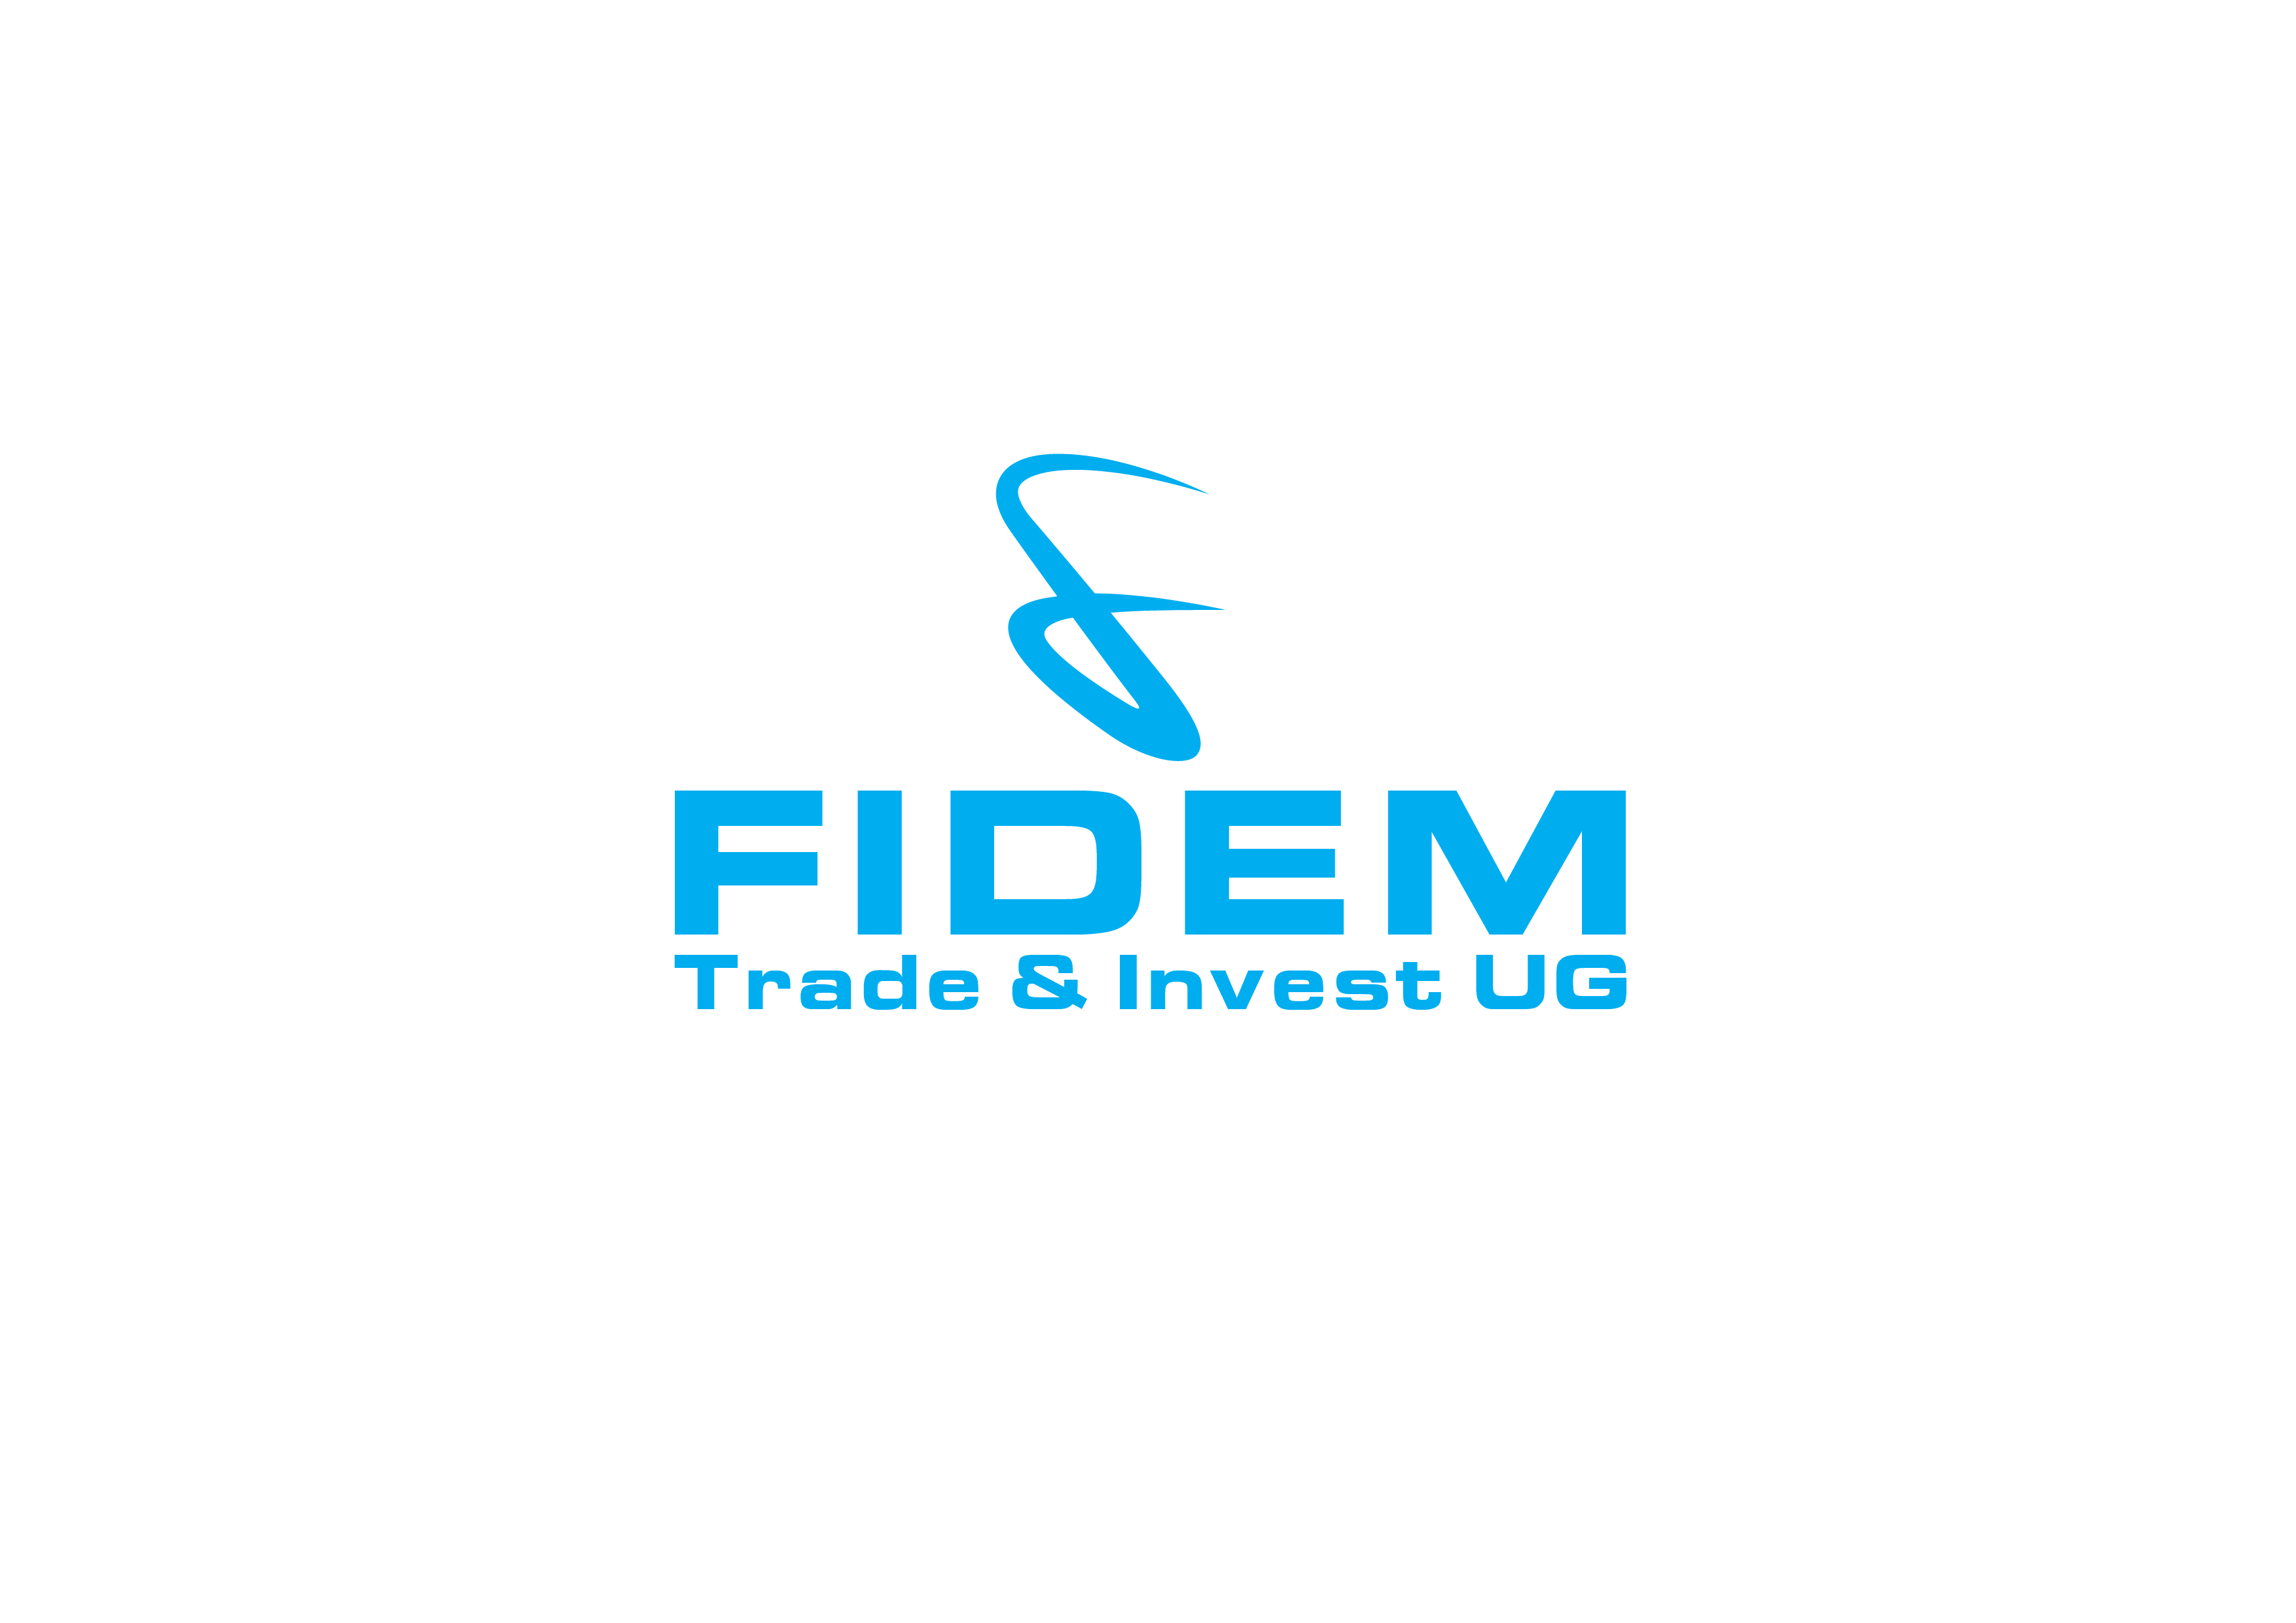 Logo Design by 3draw - Entry No. 689 in the Logo Design Contest Professional Logo Design for FIDEM Trade & Invest UG.